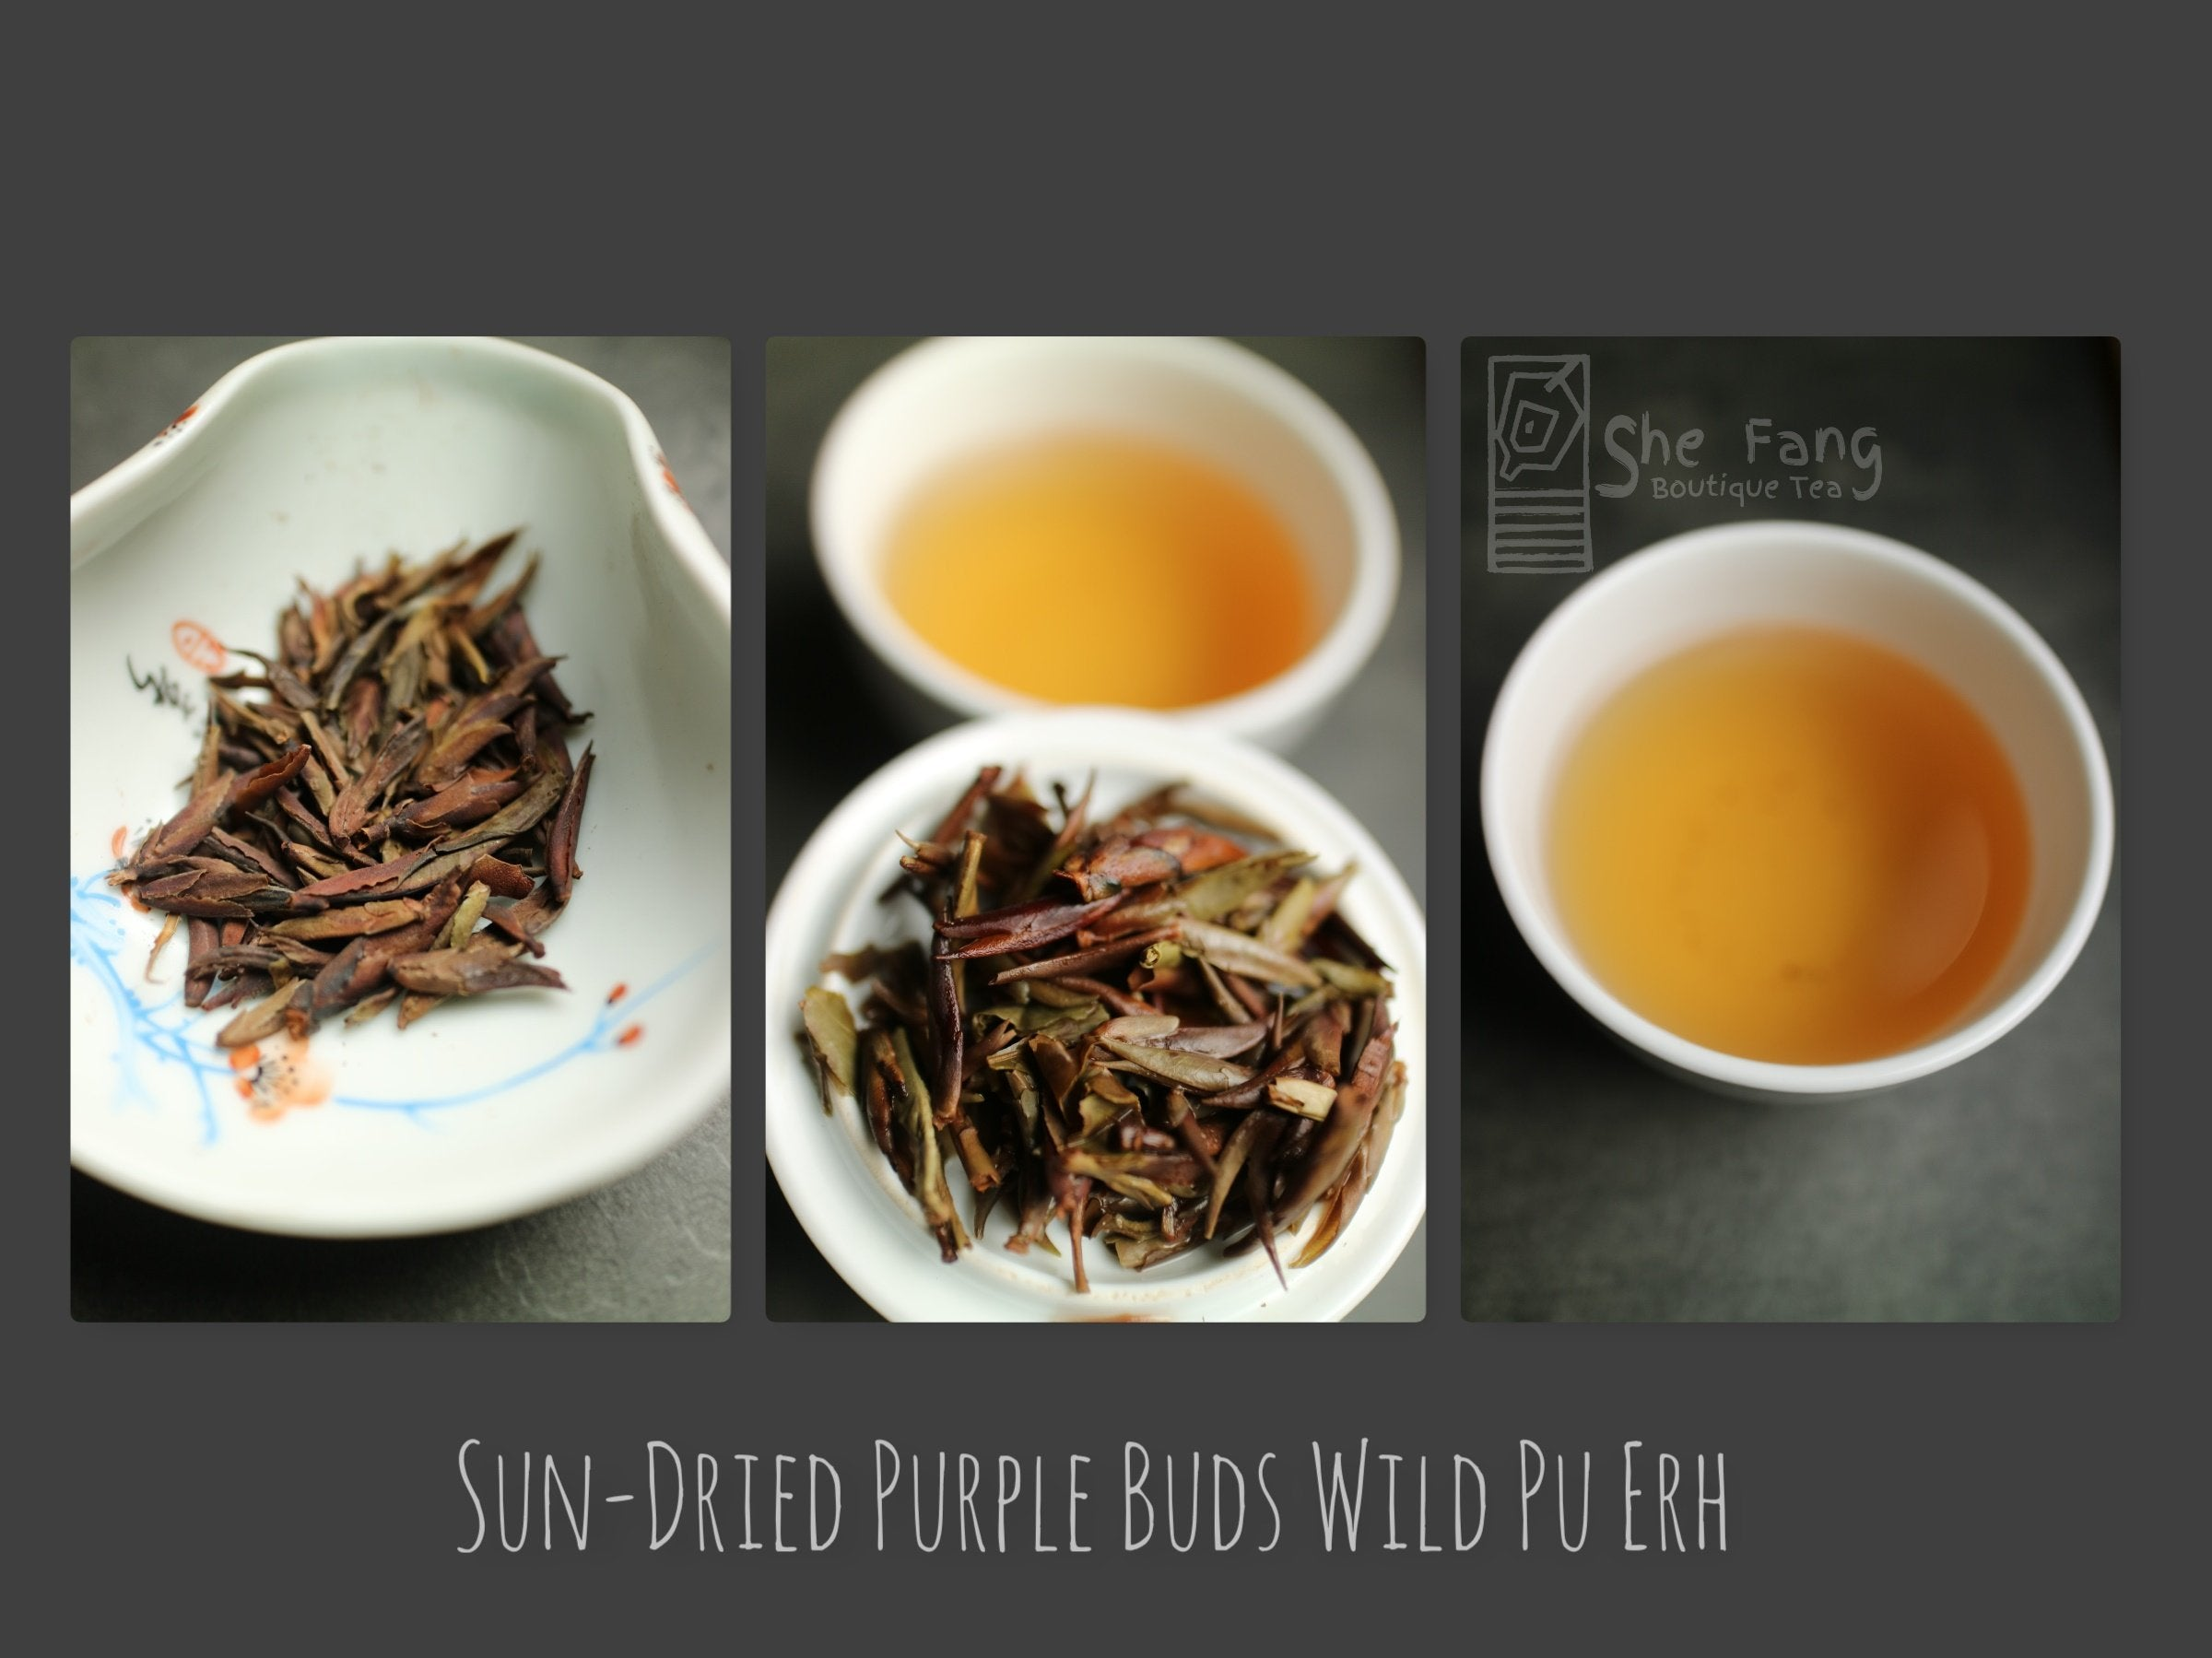 Tea sourcing – batch N.240 Pu Erh Teas – Sun-Dried Purple Buds Wild Pu Erh